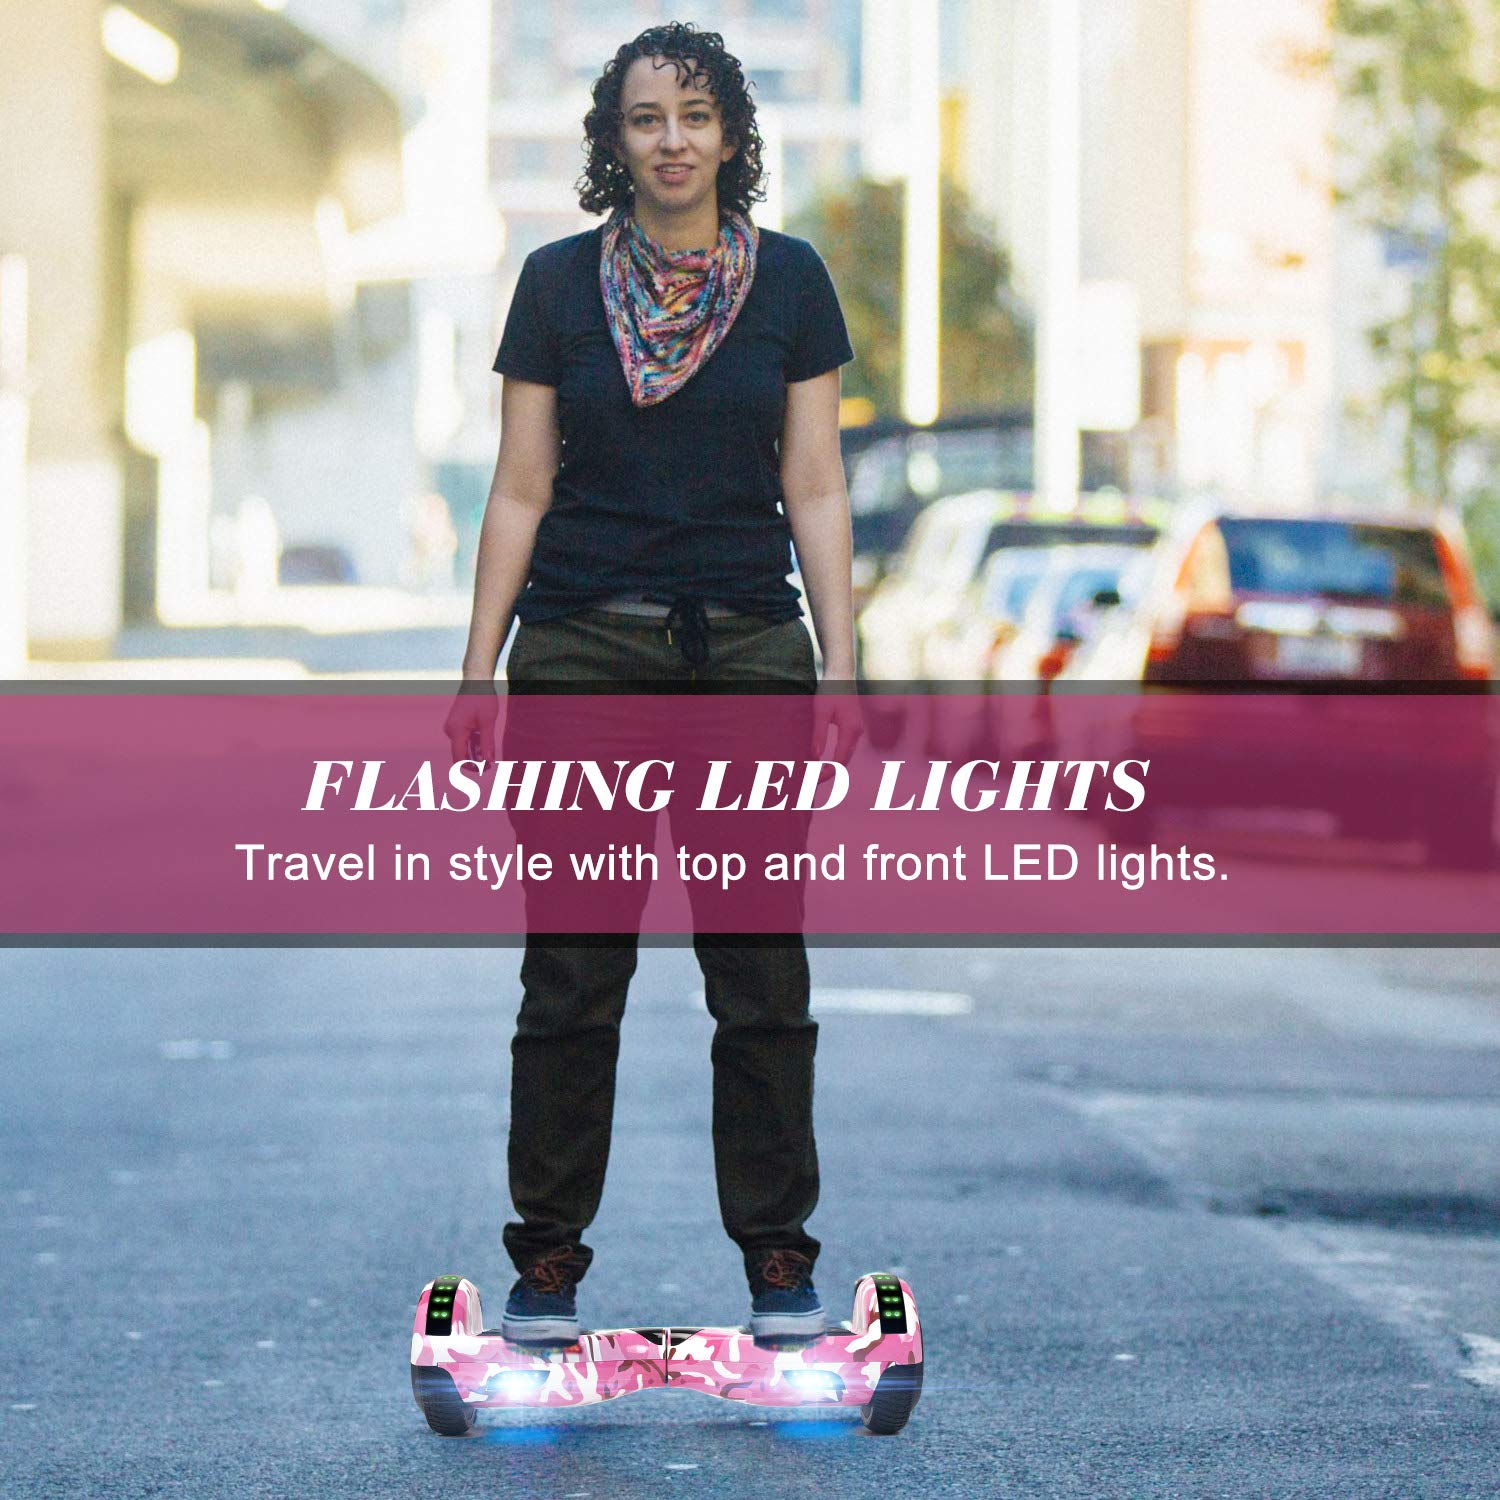 """SWEETBUY Hoverboard UL 2272 Certified 6.5"""" Two-Wheel Self Balancing Electric Scooter with LED Light Flash Lights Wheels RED (free carry bag) by SWEETBUY (Image #5)"""